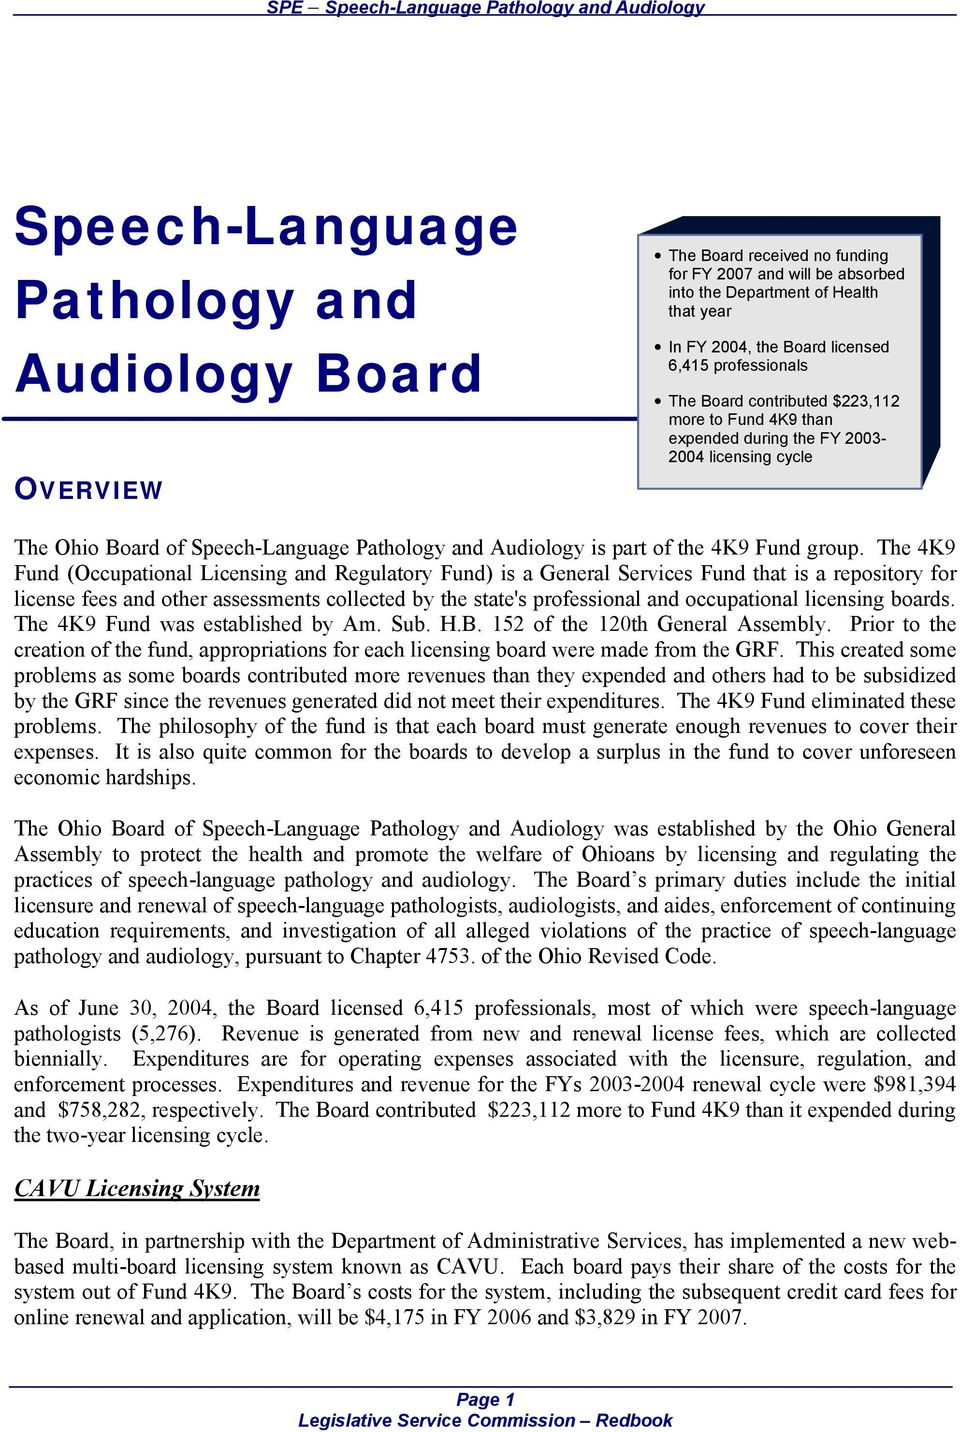 Pathology and Audiology is part of the 4K9 Fund group.